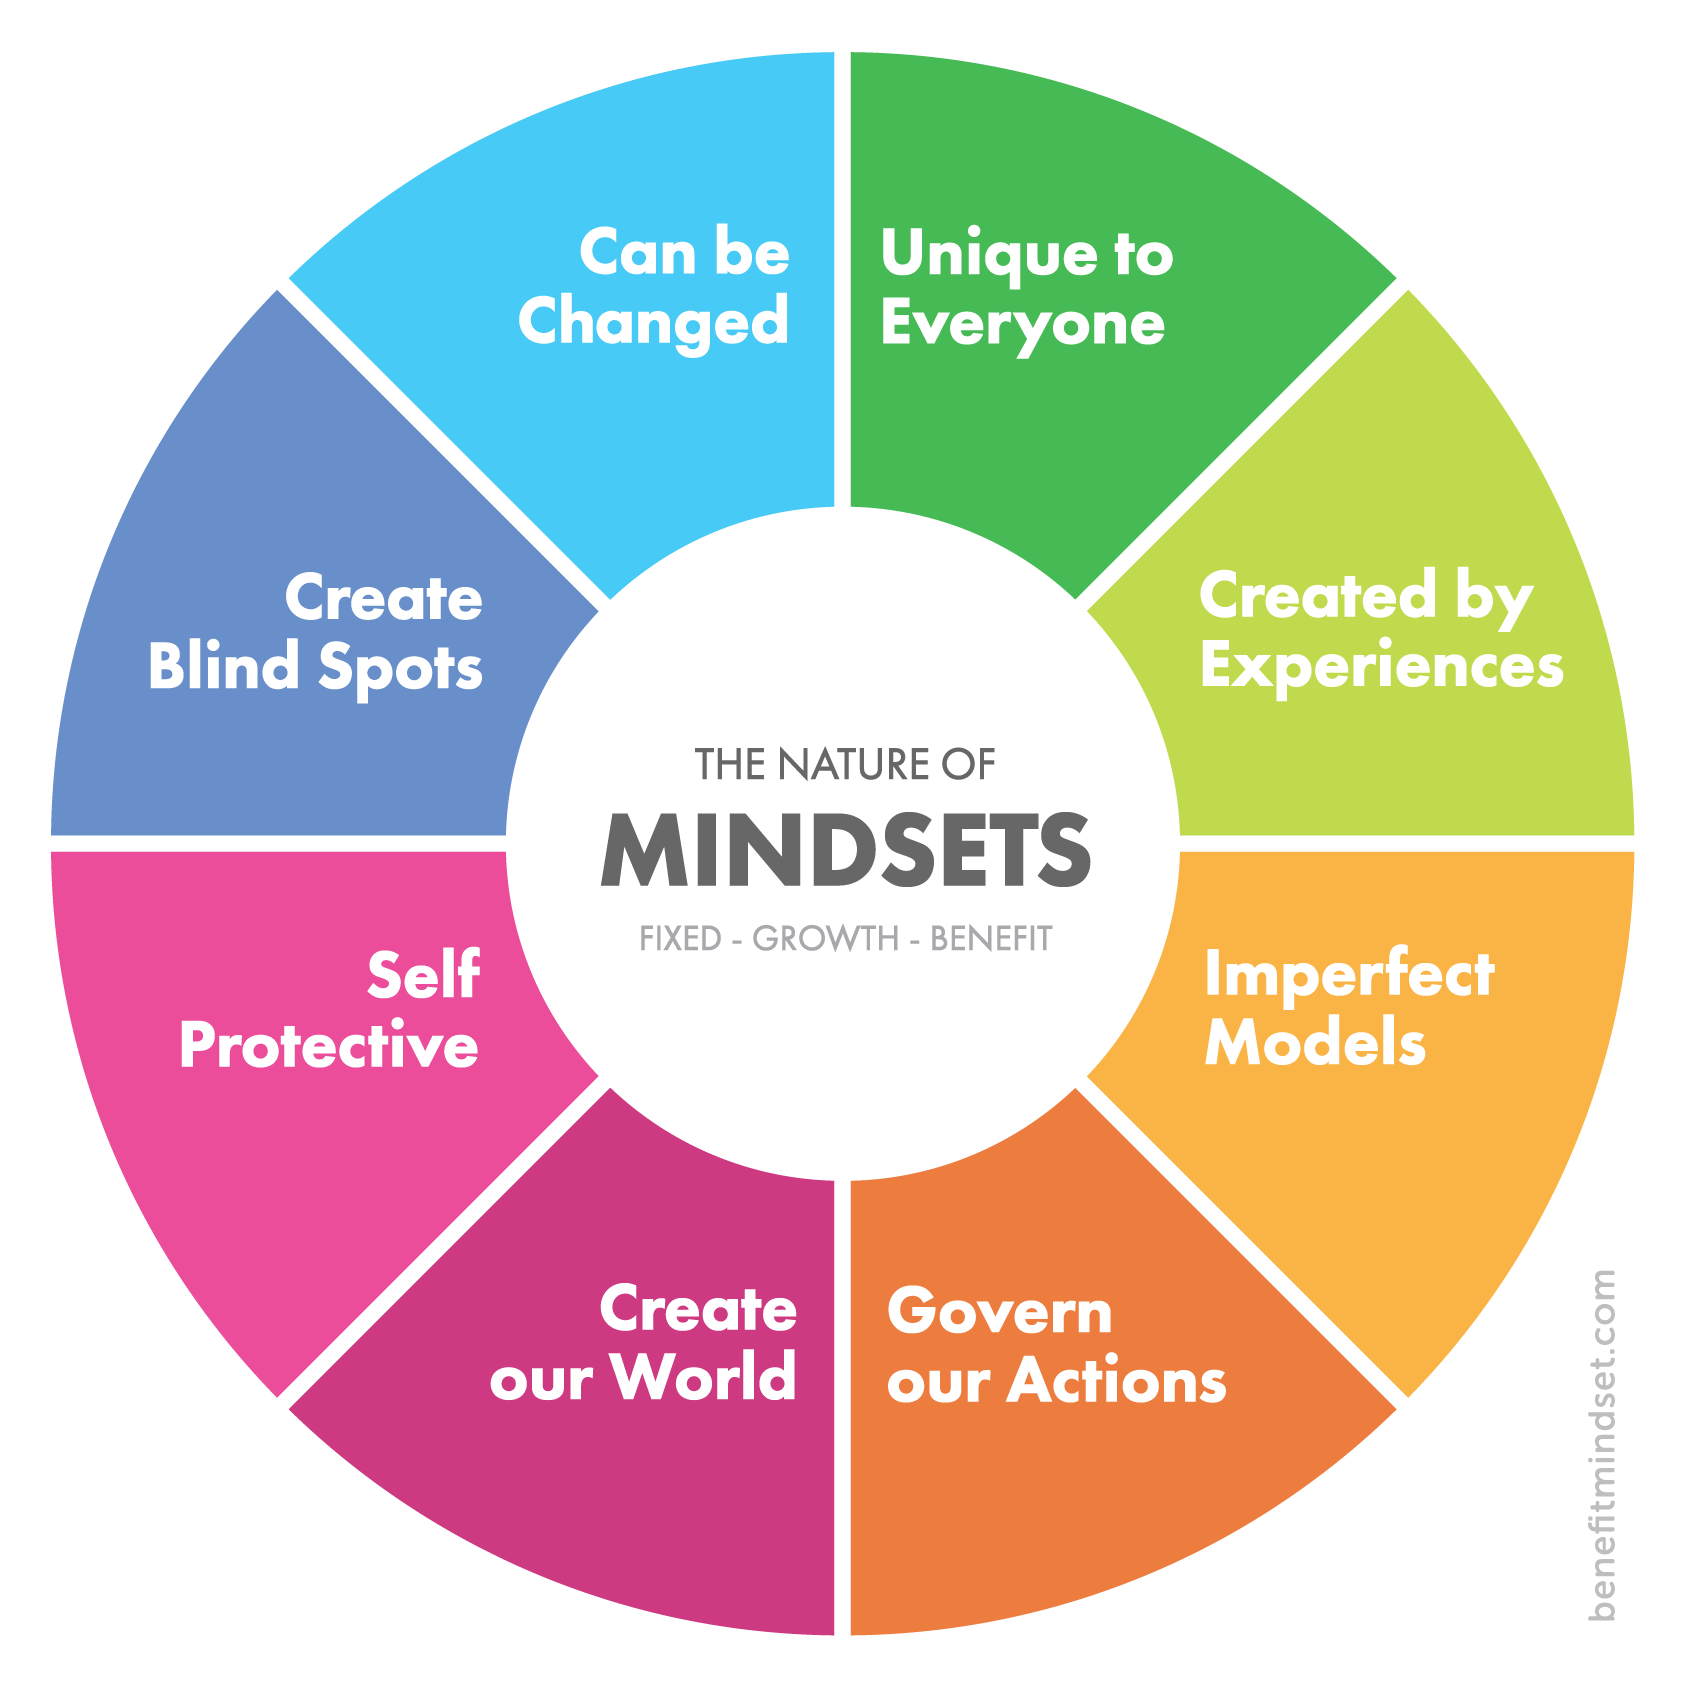 The nature of mindsets